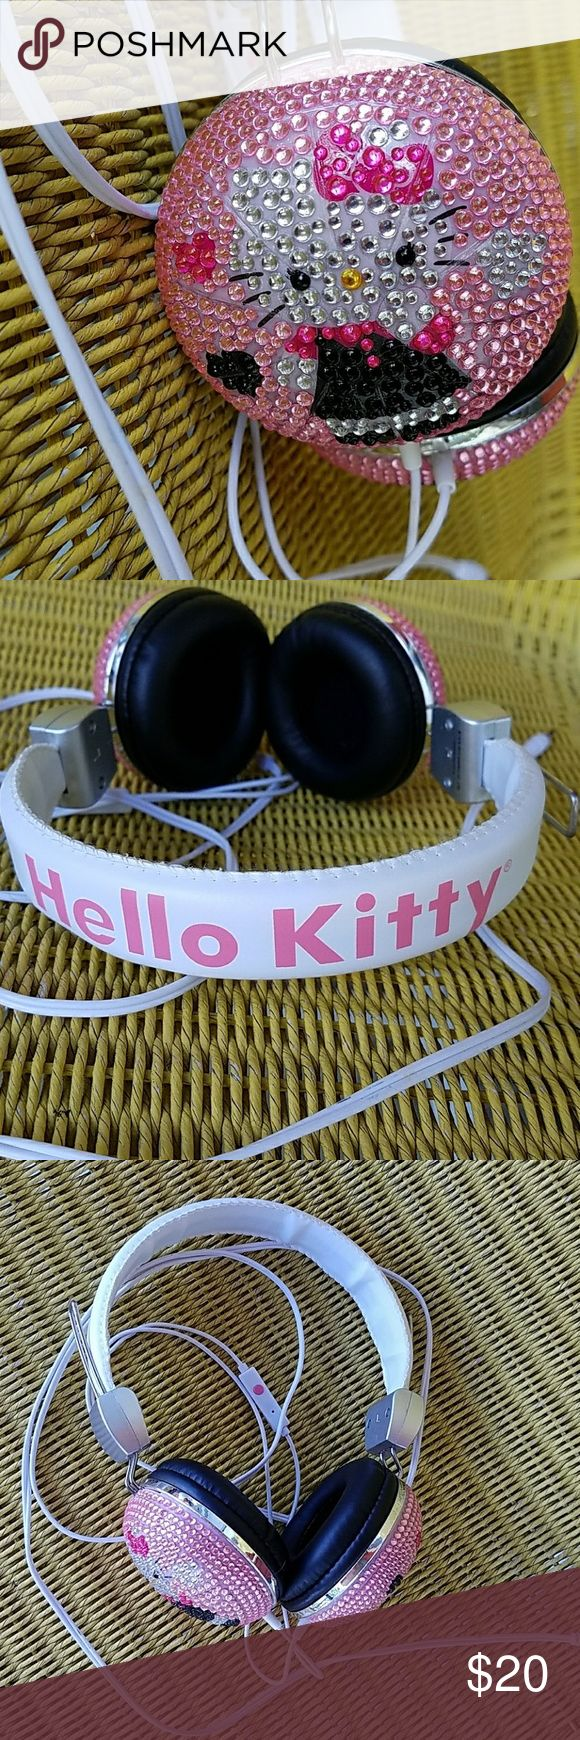 Bling Hello Kitty headphones Pink bling hello kitty headphones Hello Kitty Accessories